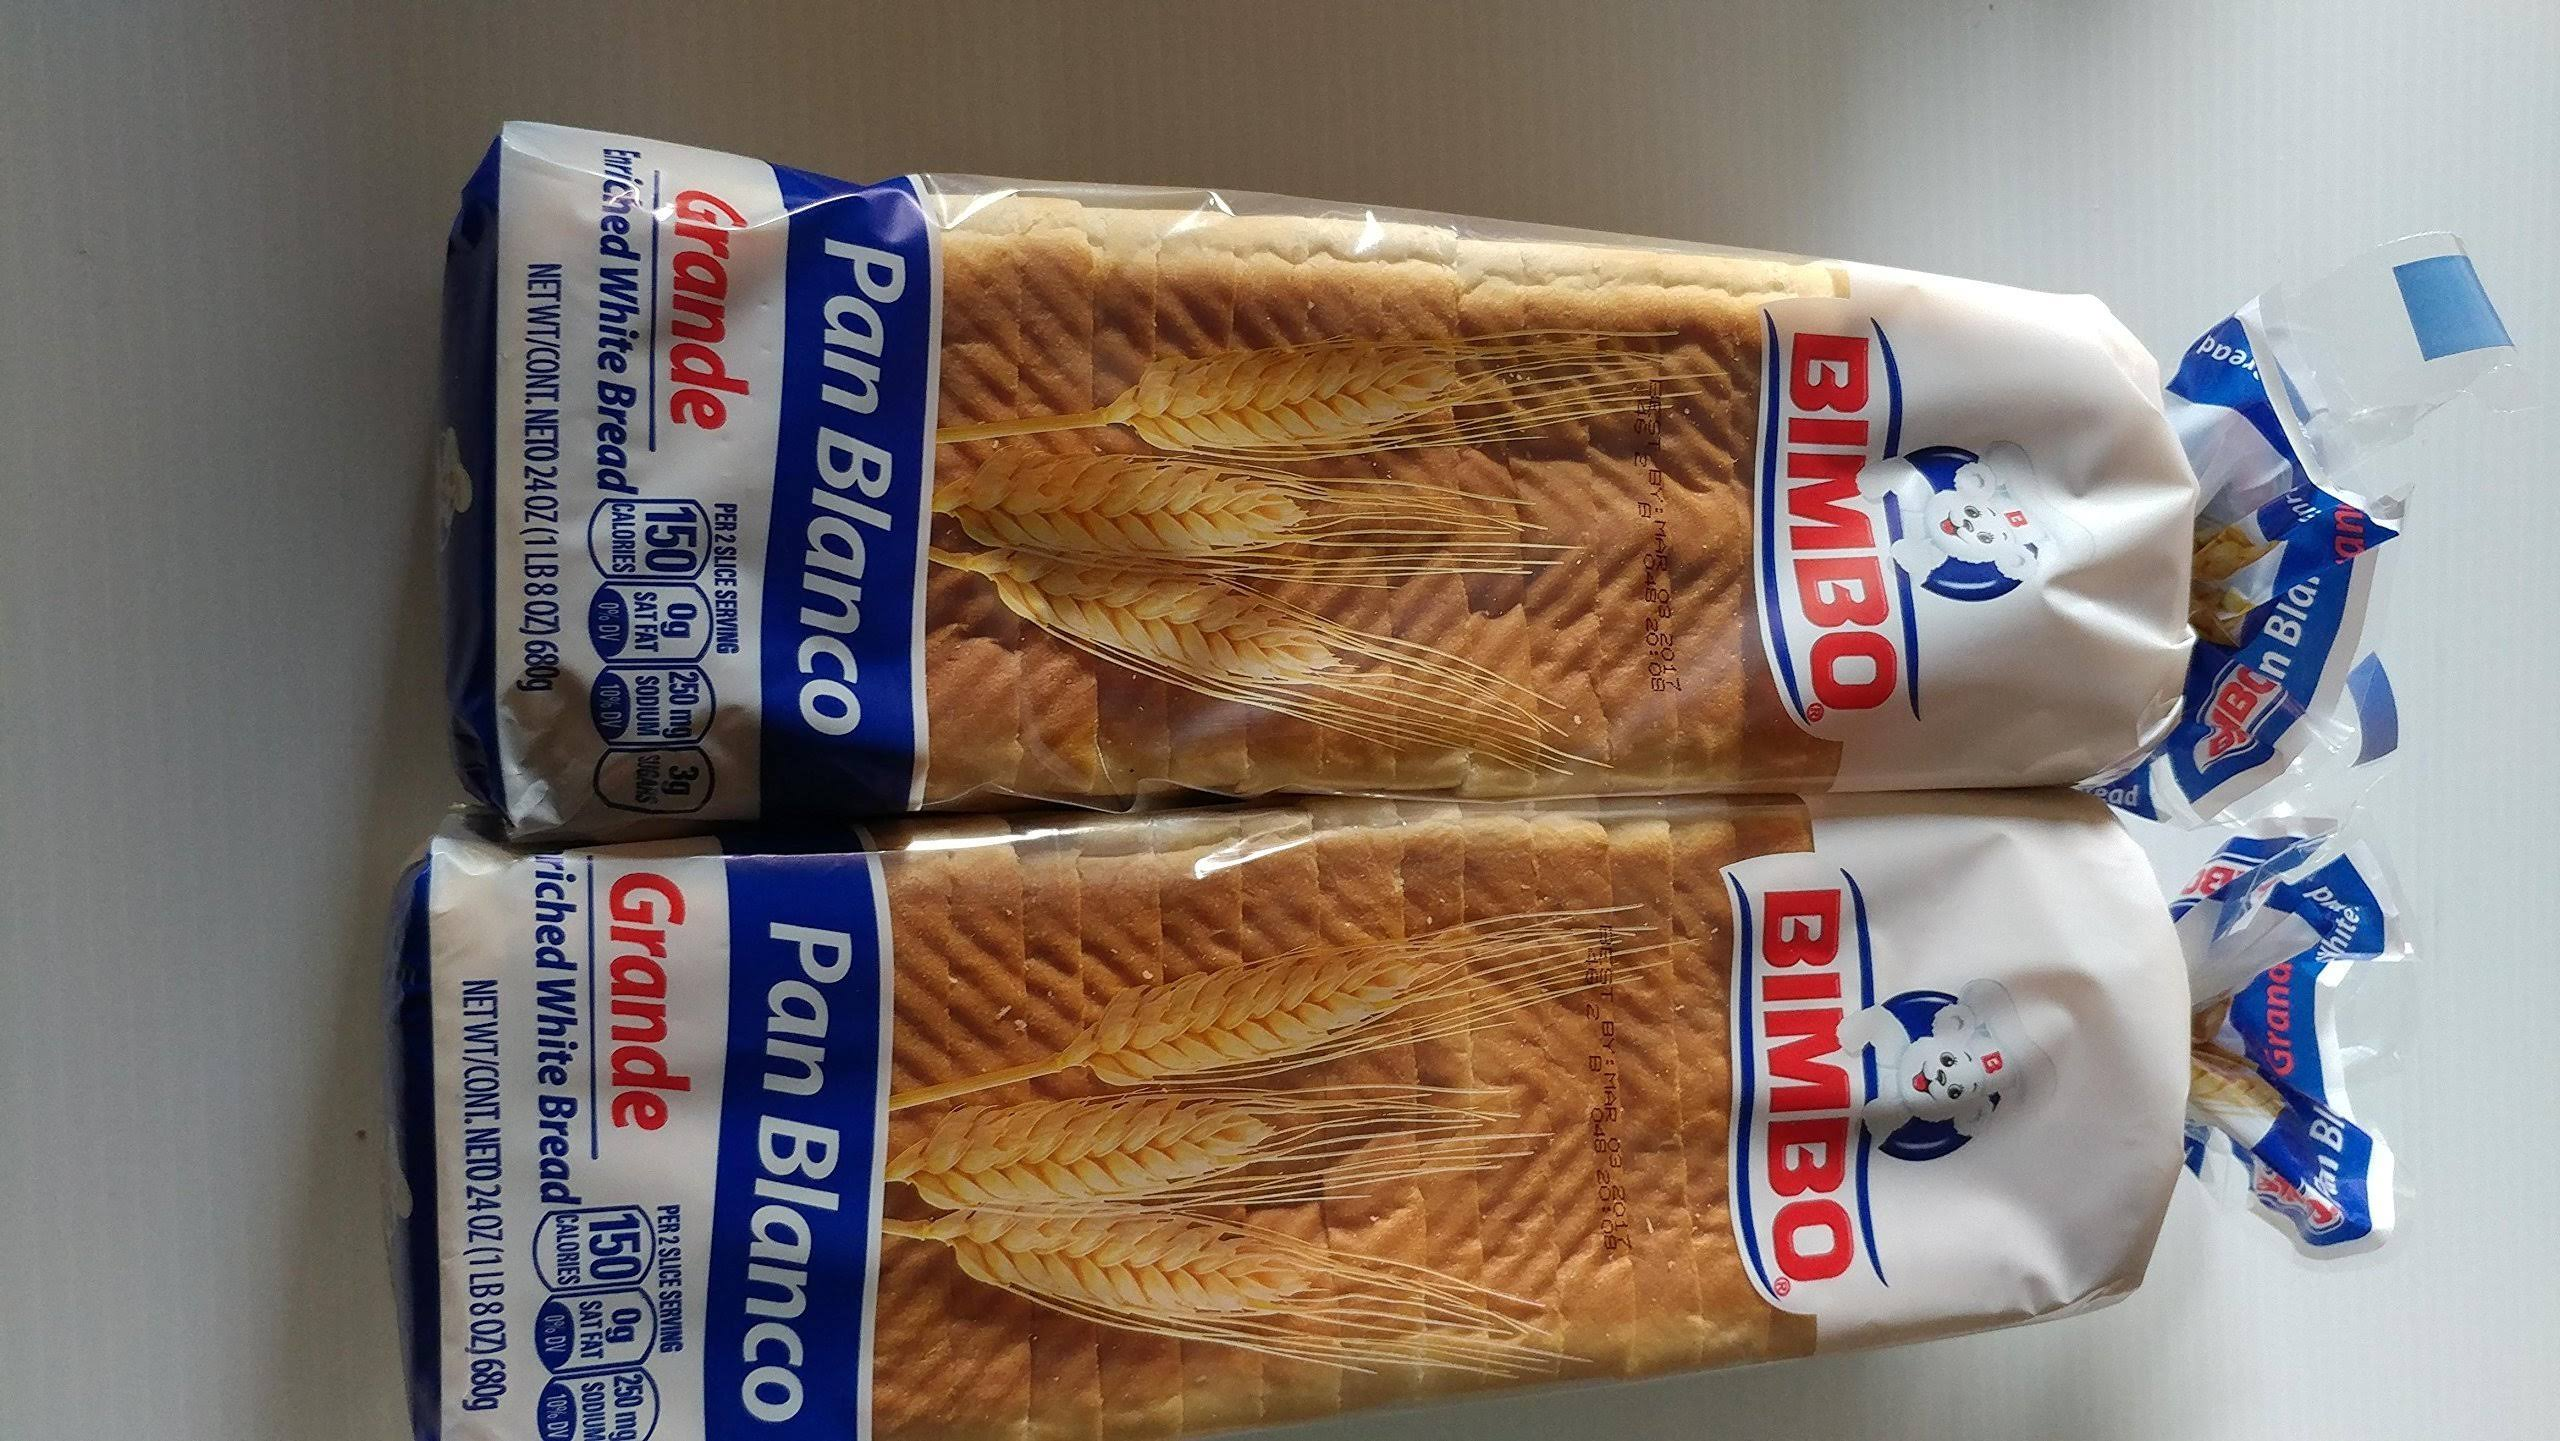 Bimbo Large White Bread - 680g